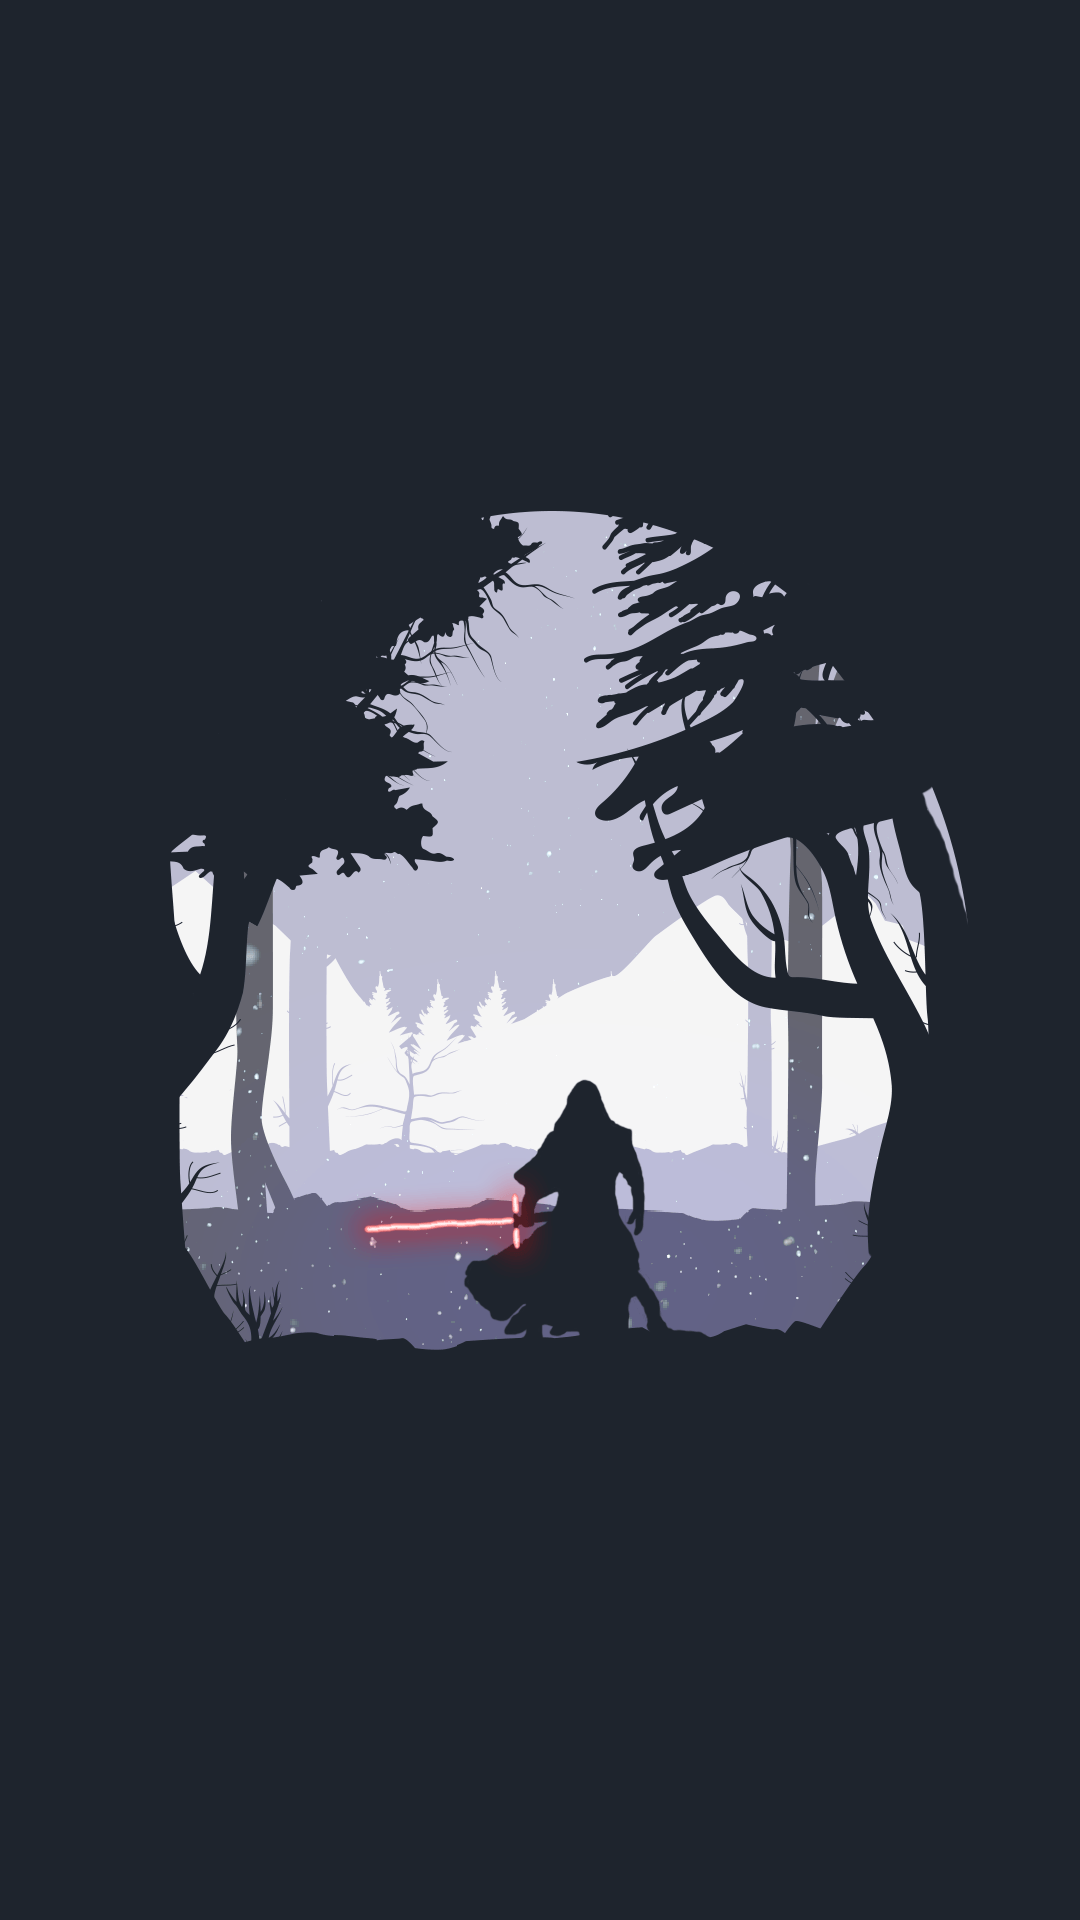 Star Wars Ios Wallpaper Posted By Ethan Sellers